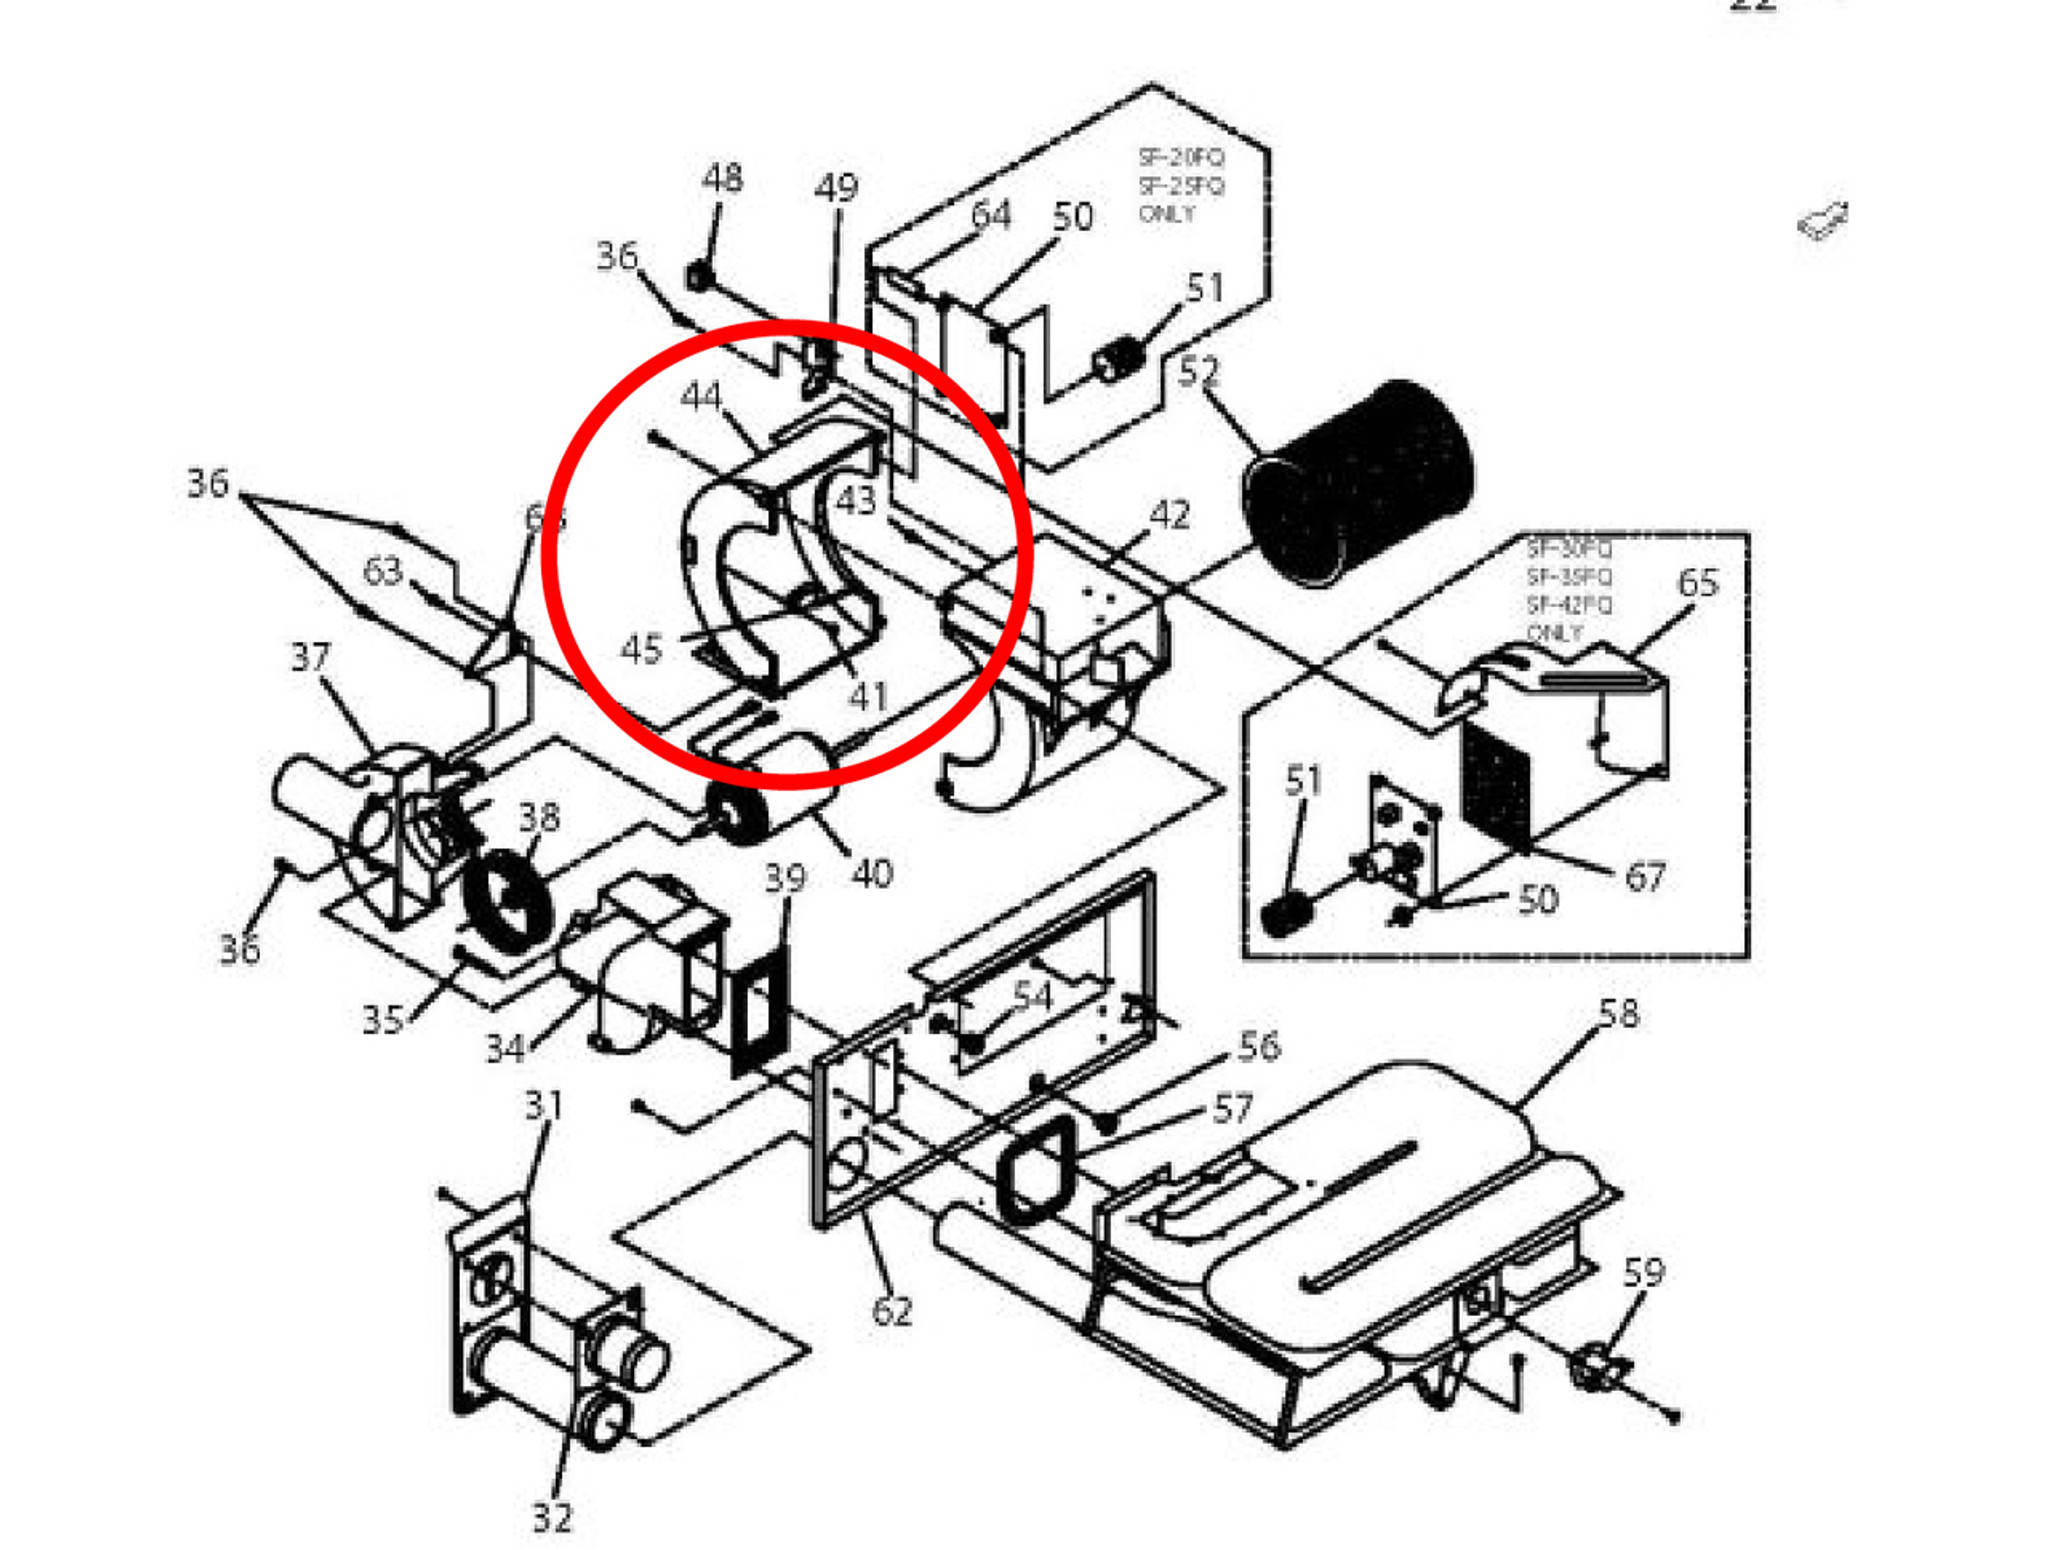 hight resolution of suburban rv furnace sf 42 wiring diagram wiring library gas furnace relay wiring diagram suburban rv furnace sf 42 wiring diagram